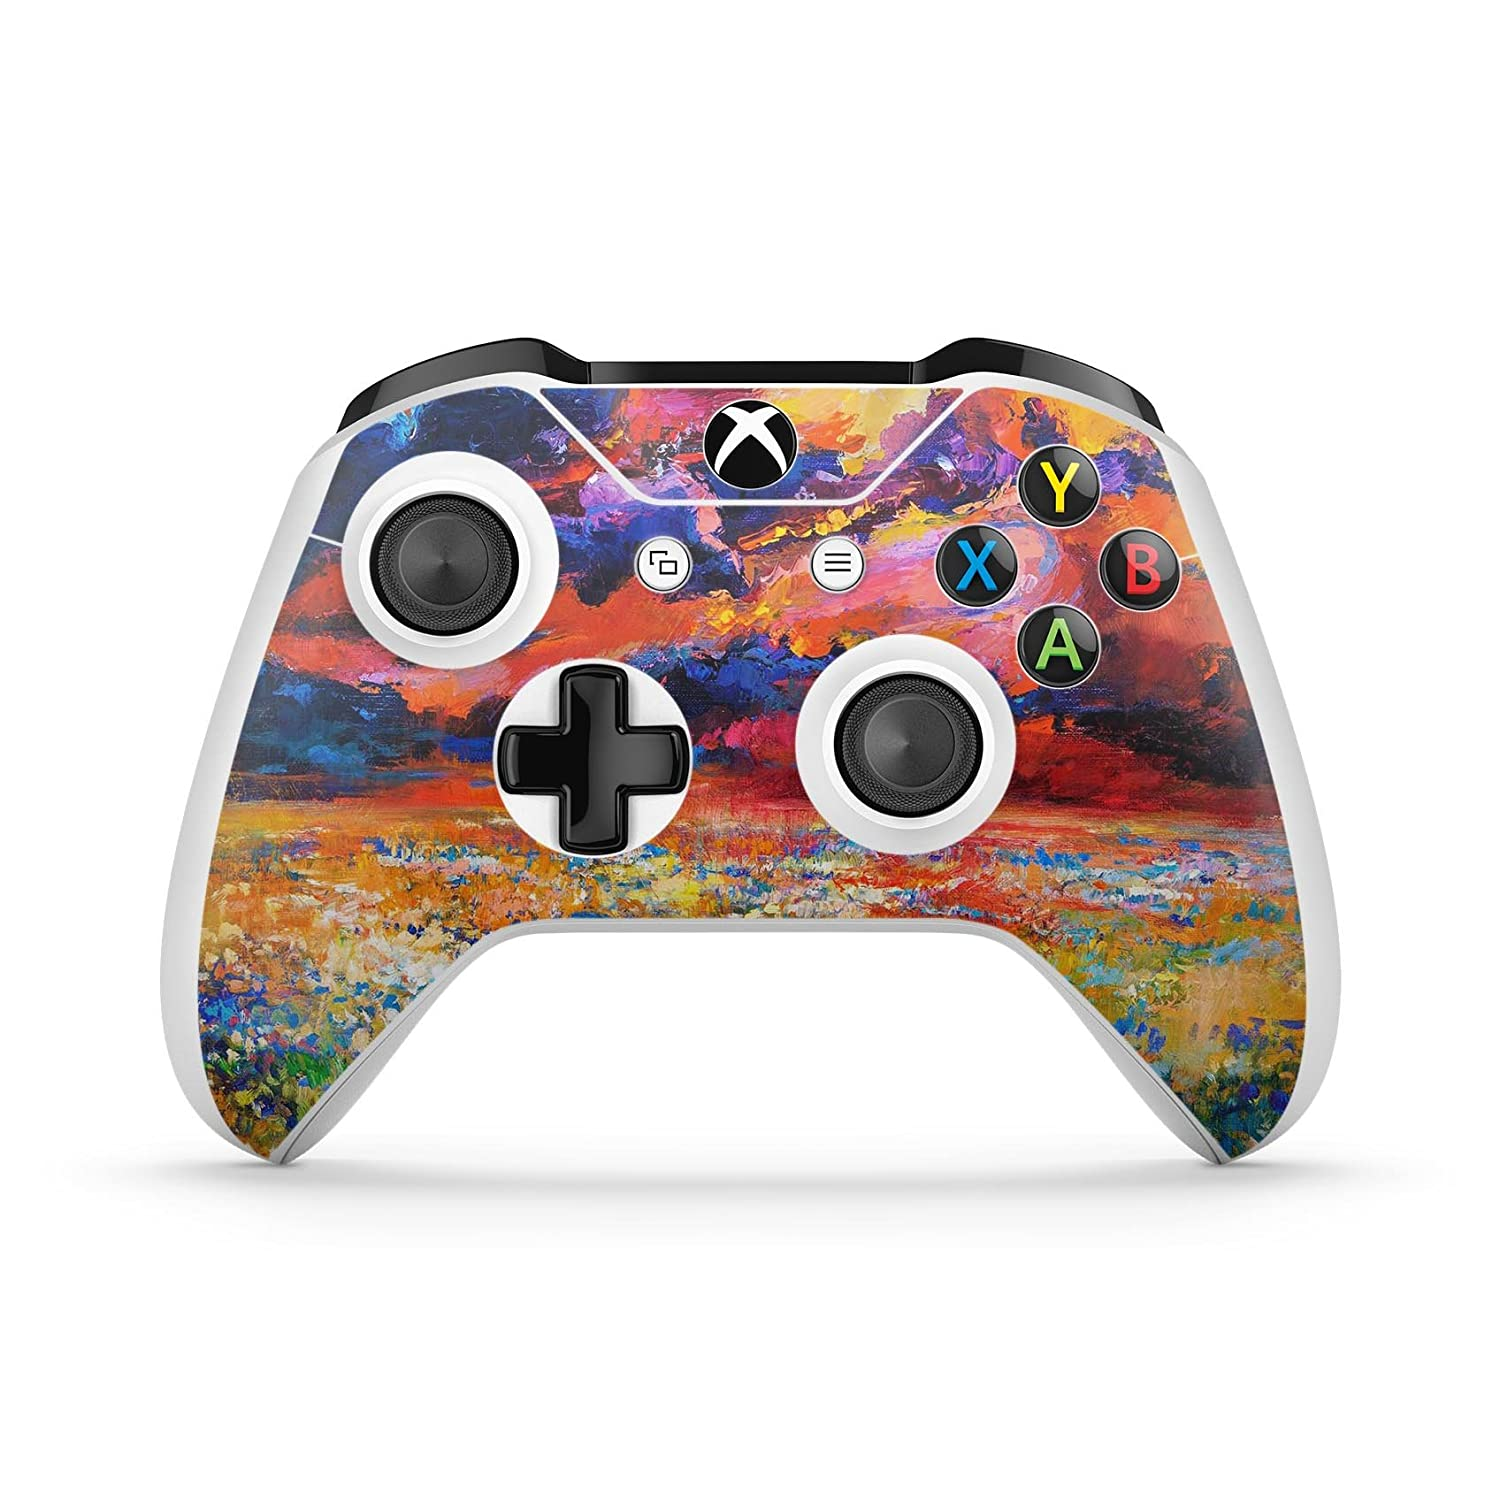 Oil Painted Meadow - Protective Vinyl DesignSkinz Decal Sticker Skin-Kit for the Microsoft Xbox ONE / ONE S Controller